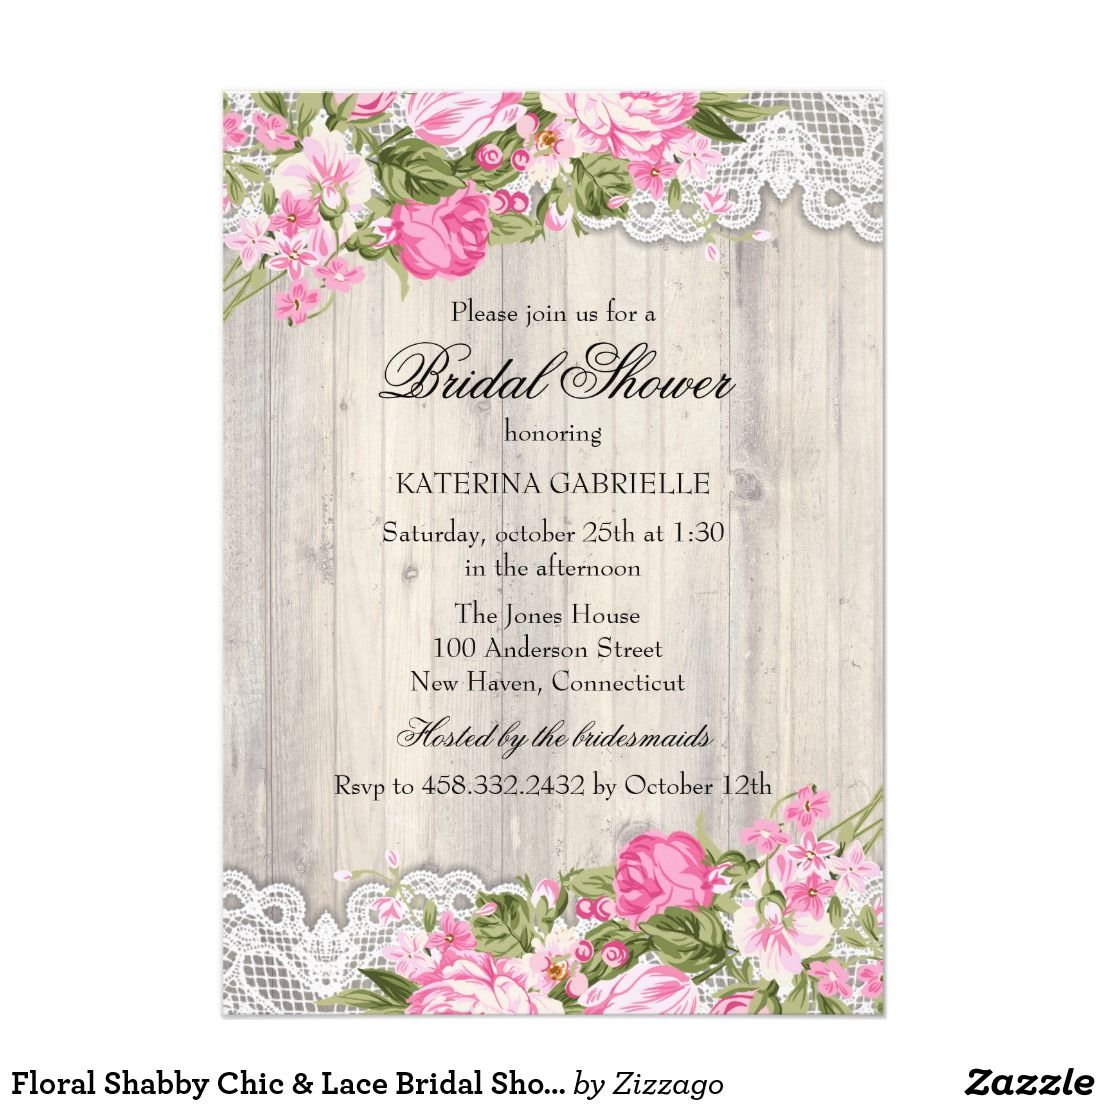 Floral shabby chic u lace bridal shower invite country style